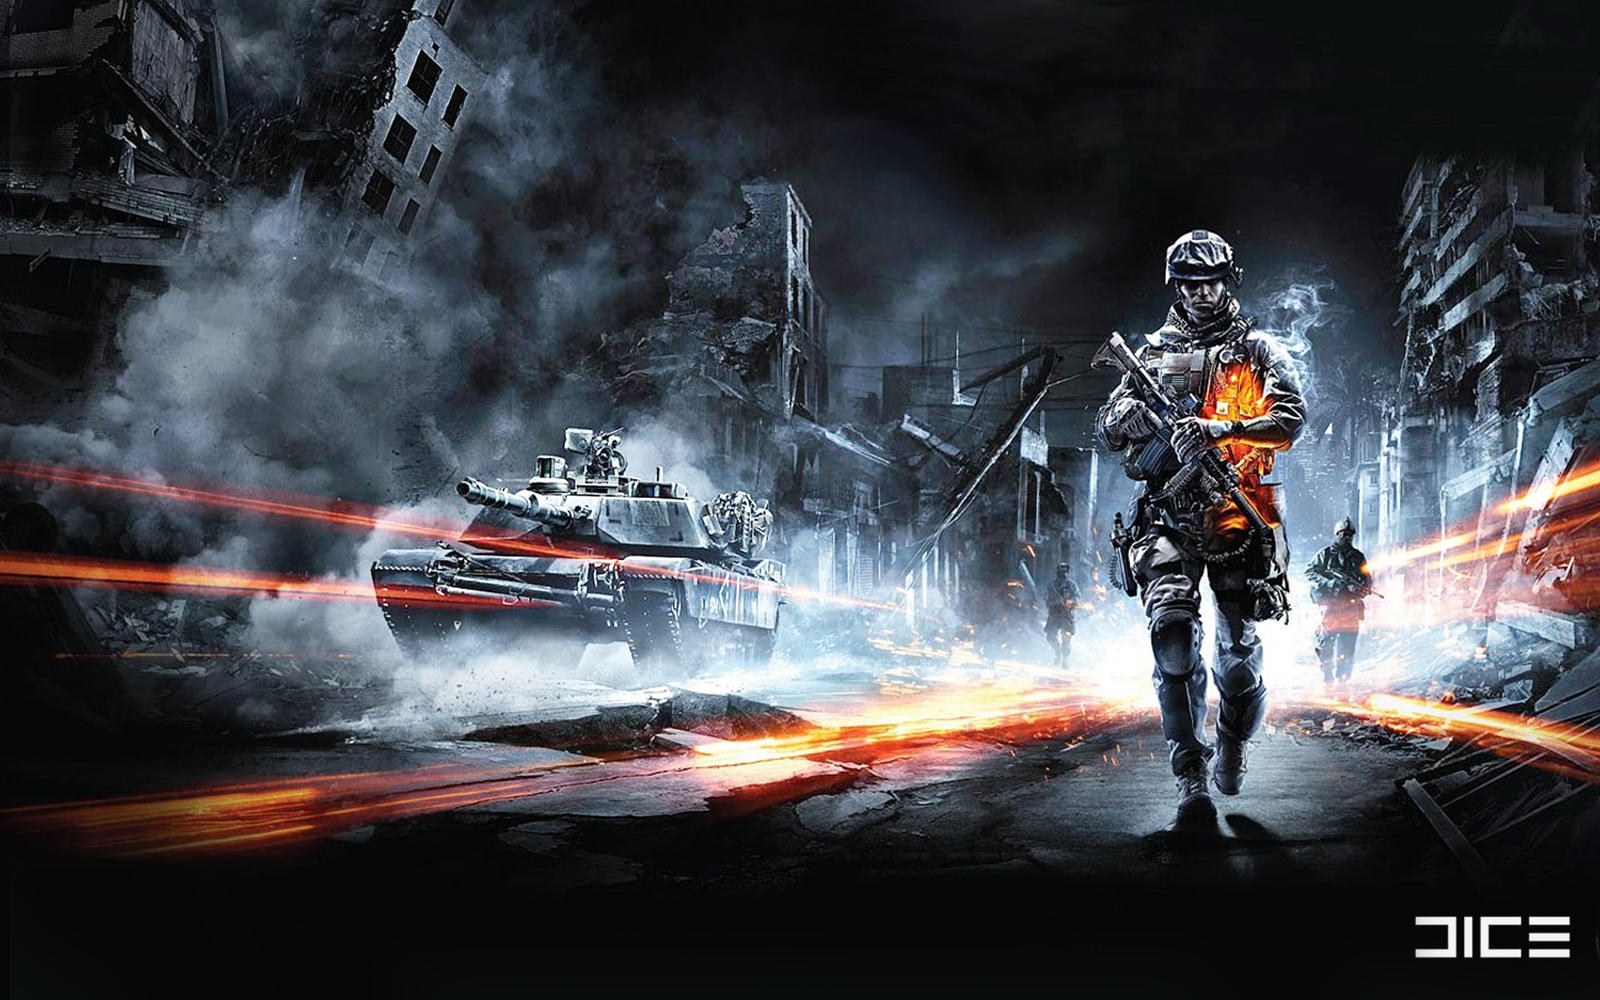 bf3 wallpaper - photo #10